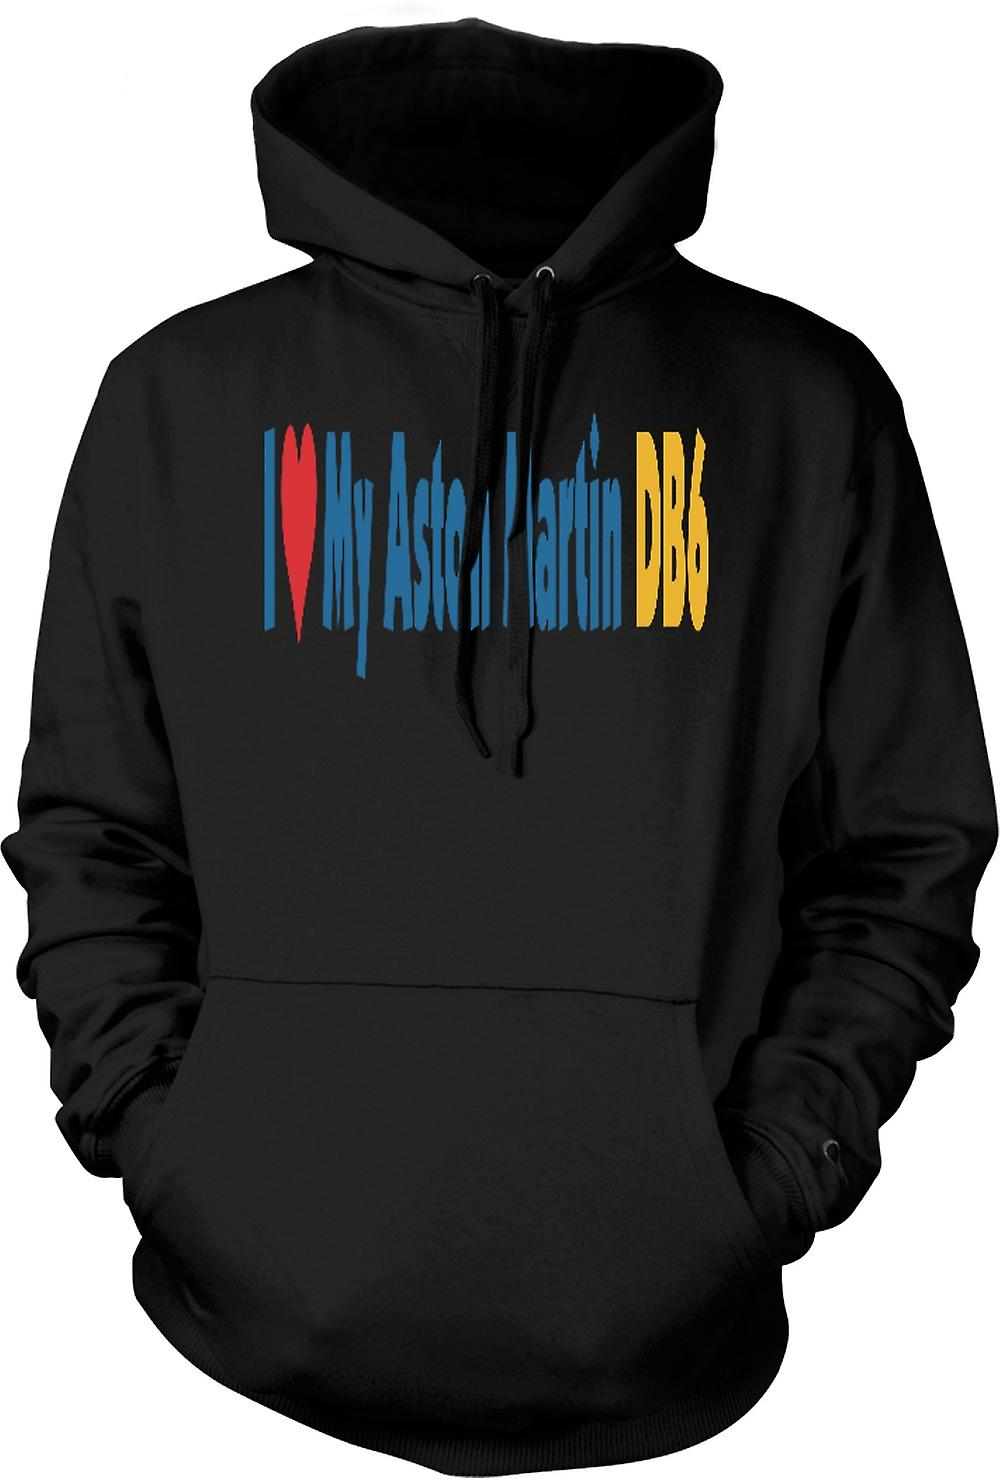 Mens Hoodie - I Love My Aston Martin DB6 - Car Enthusiast